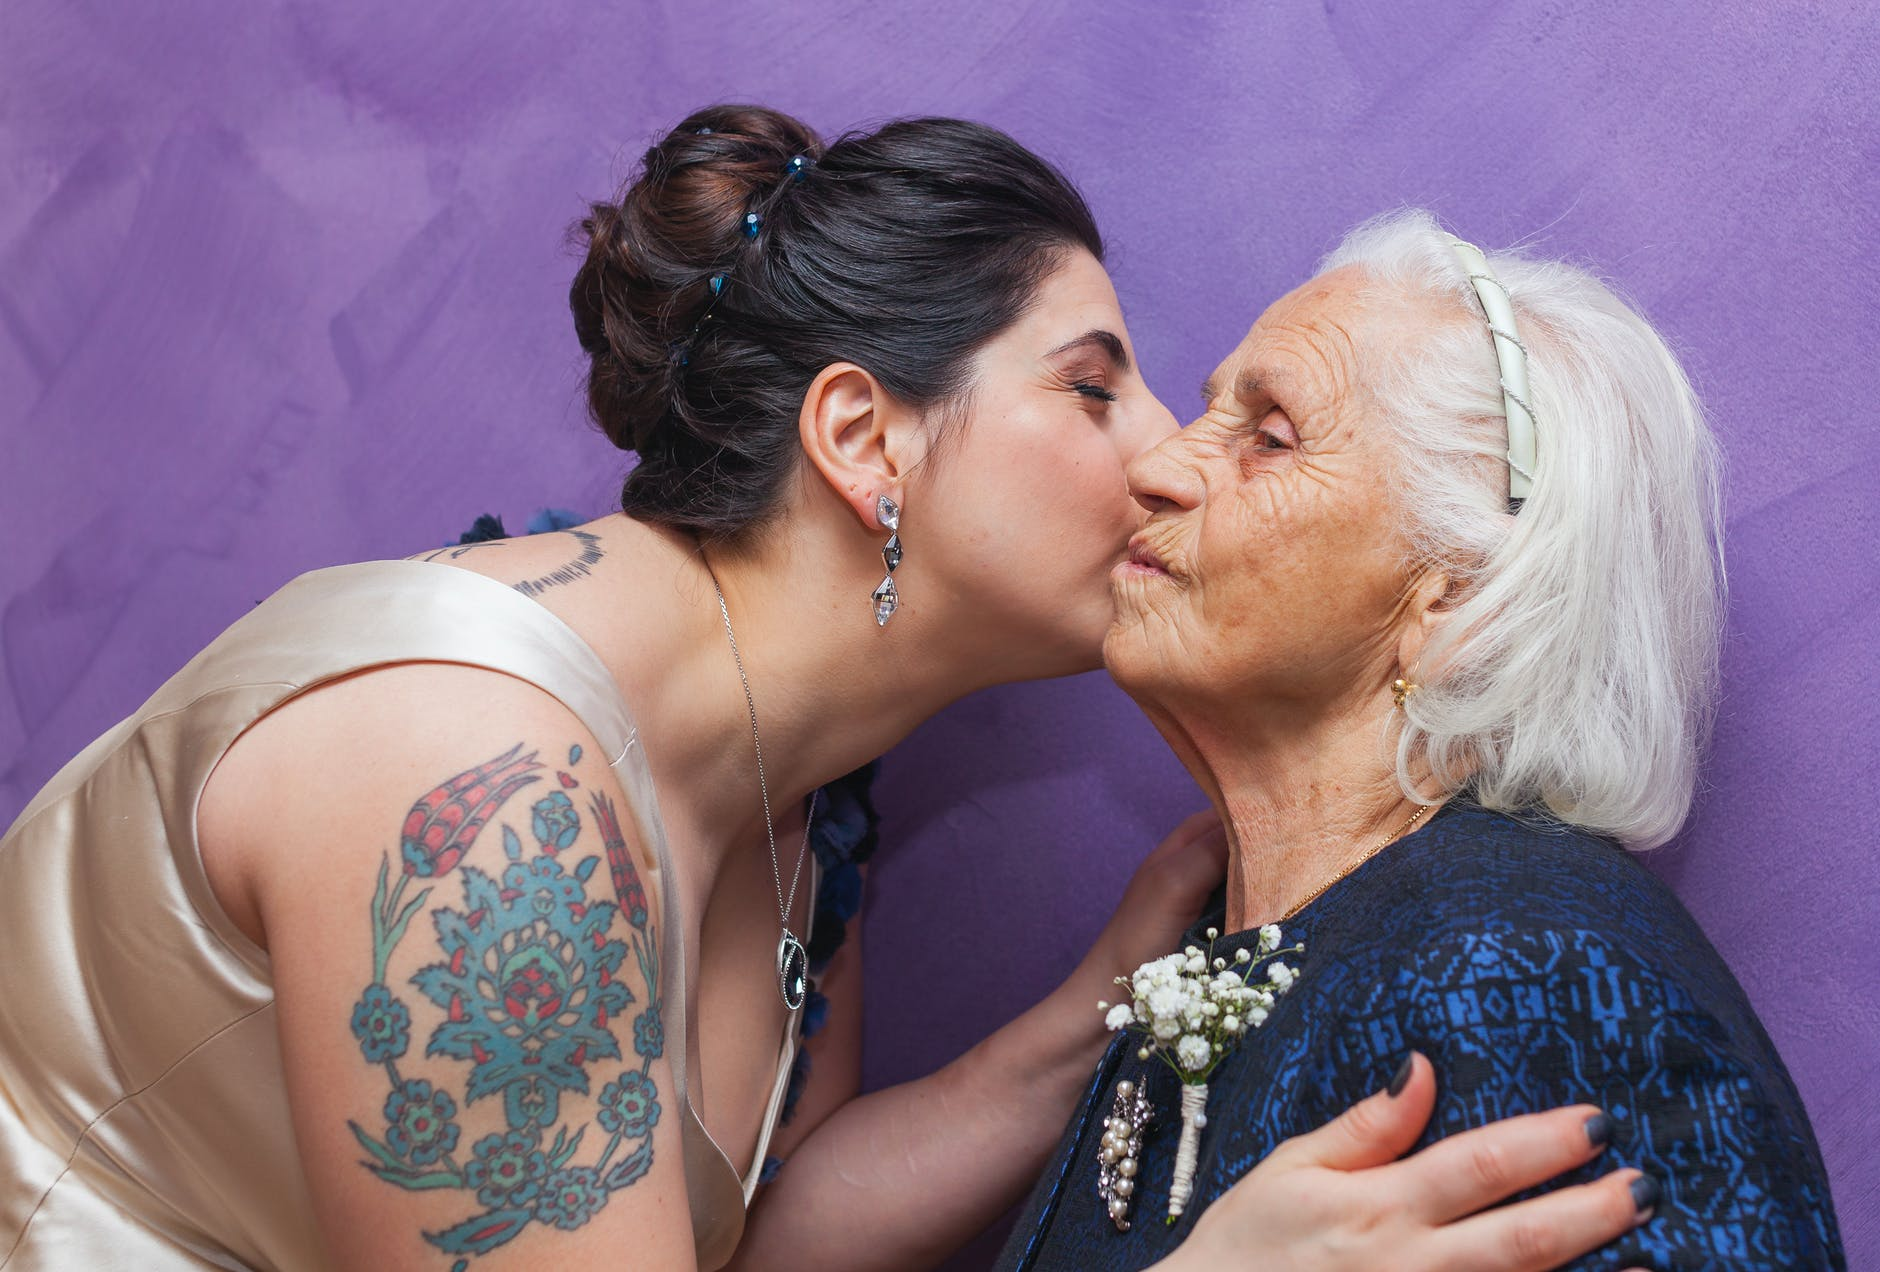 woman kissing woman with boutonniere on chest